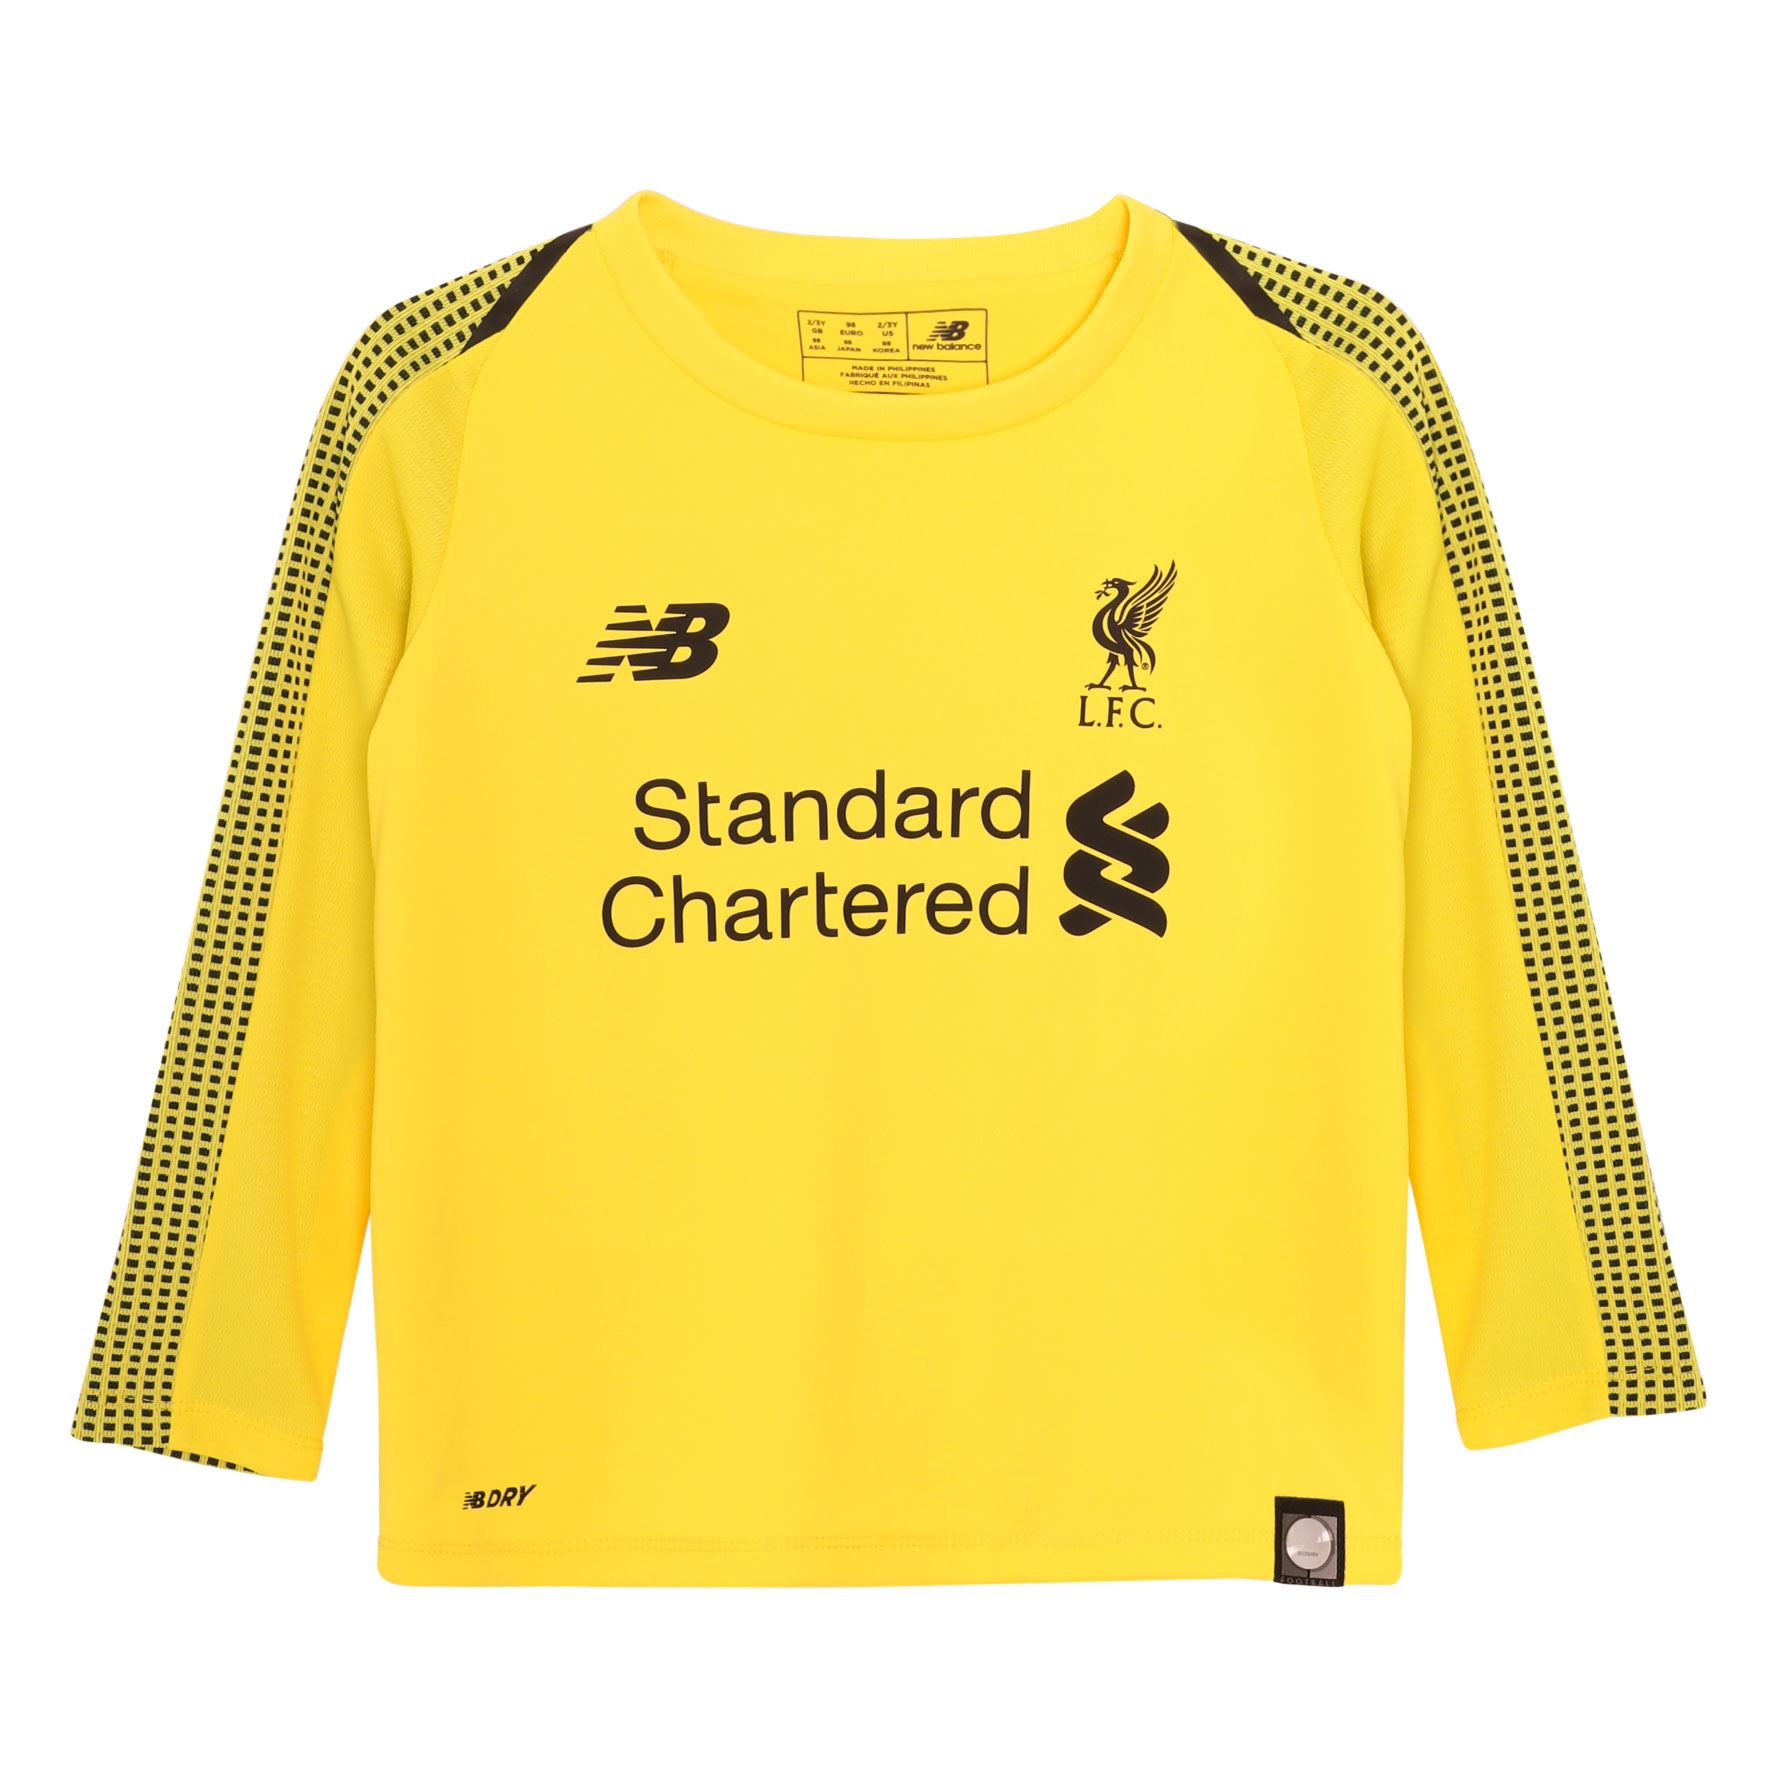 3f1a56ee096 Details about Liverpool FC Home Kit Yellow Baby Football Goalkeeper Kit 18/19  LFC Official